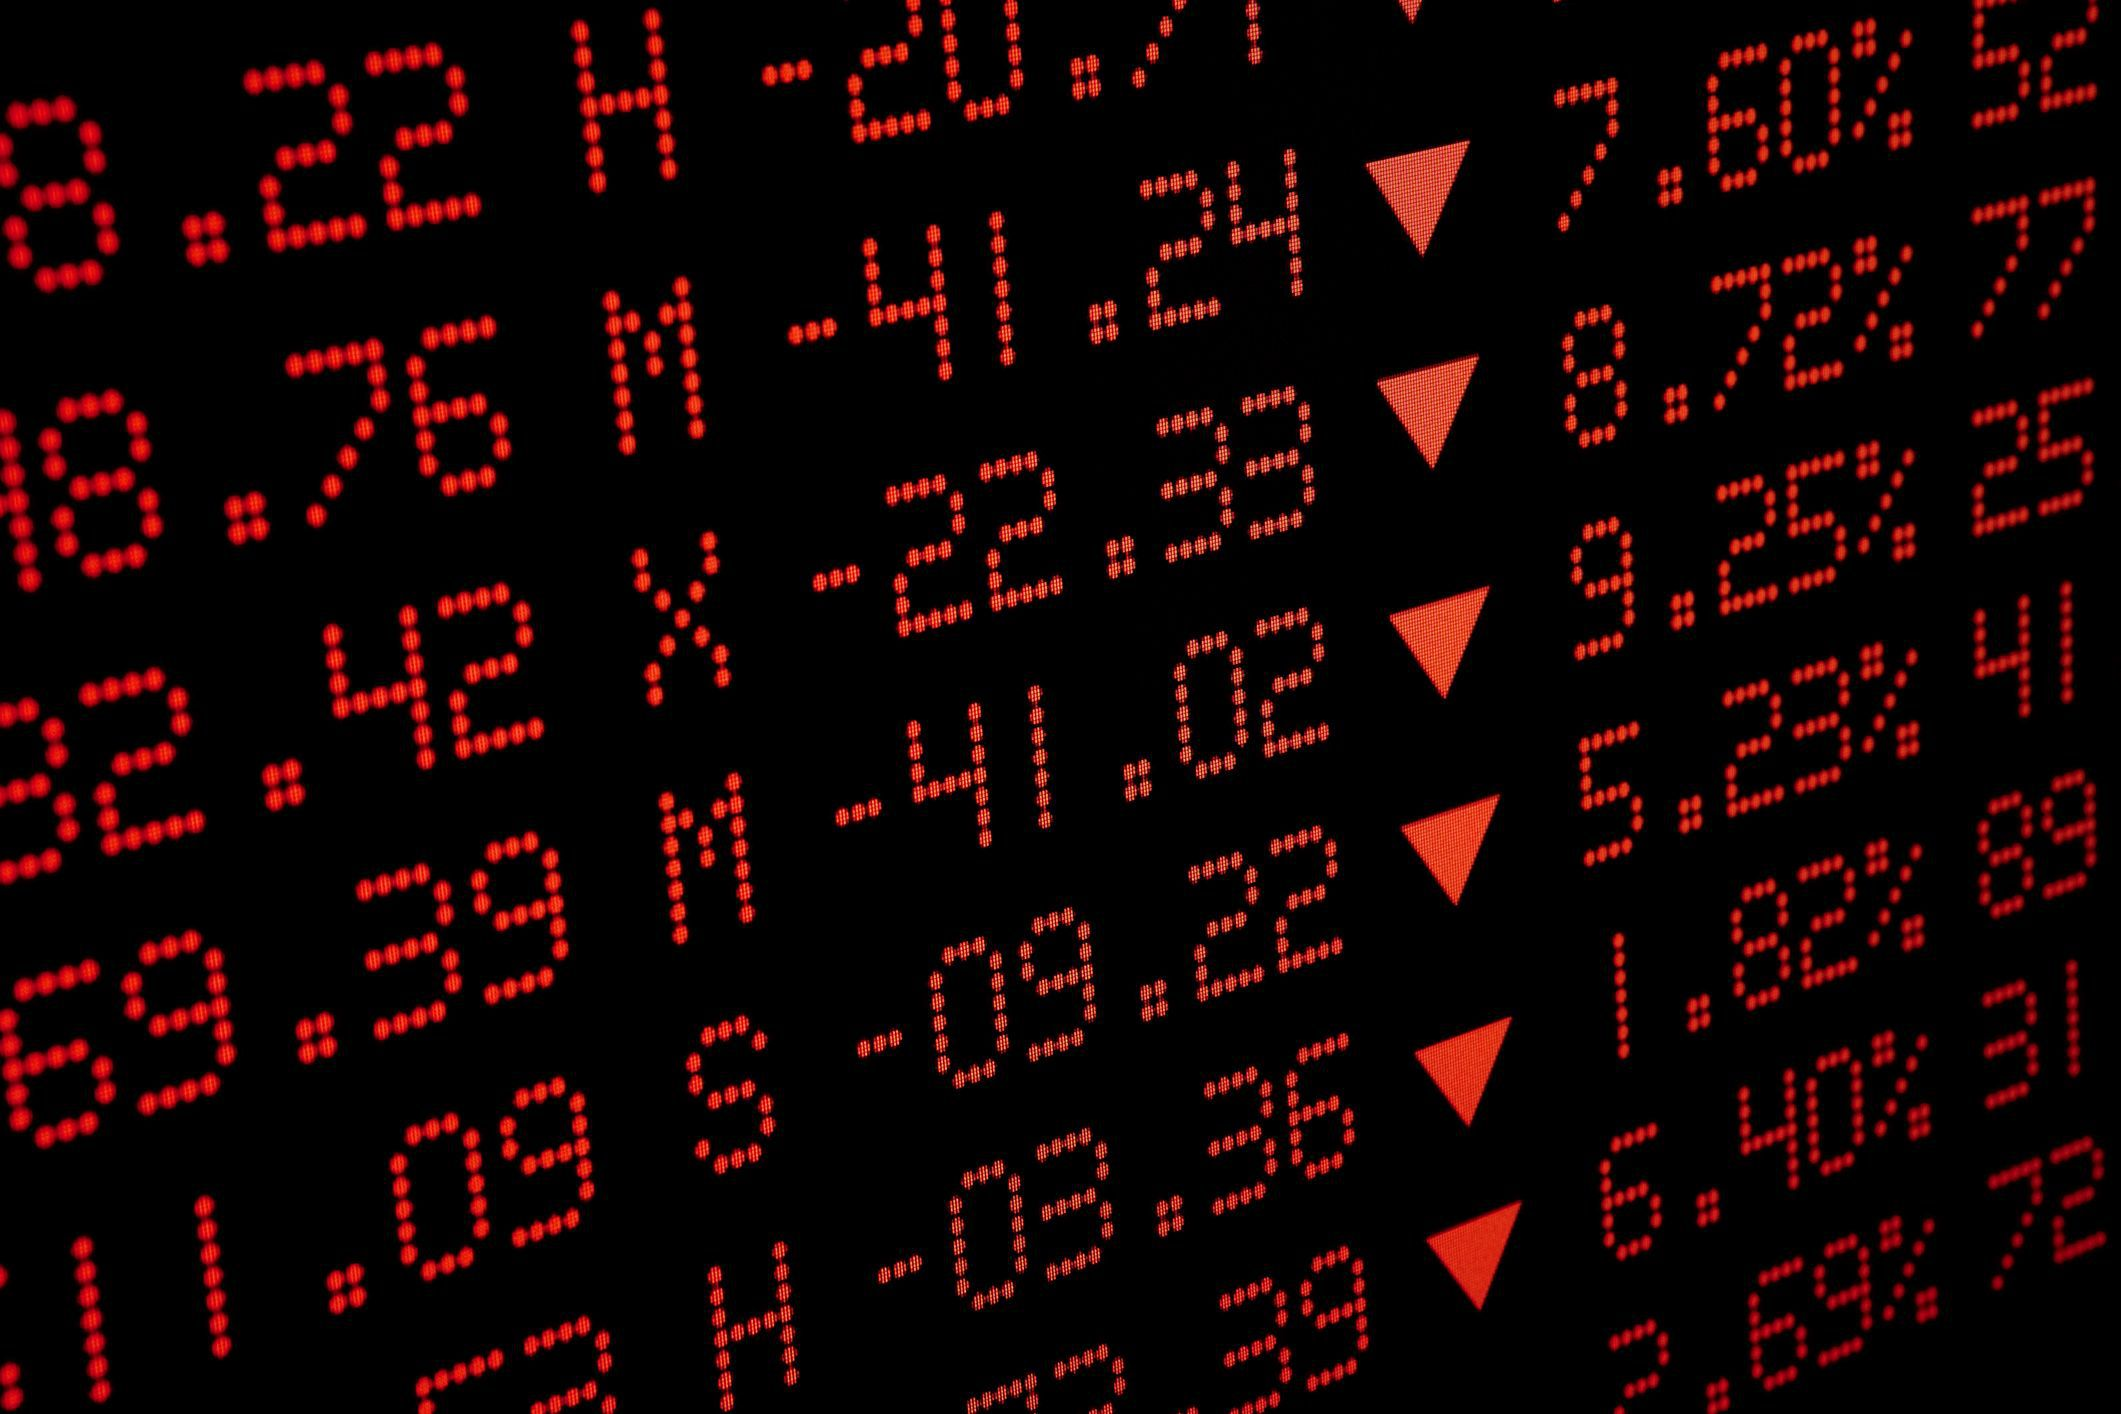 Bank-of-America-has-published-a-list-of-possible-recession-indicators